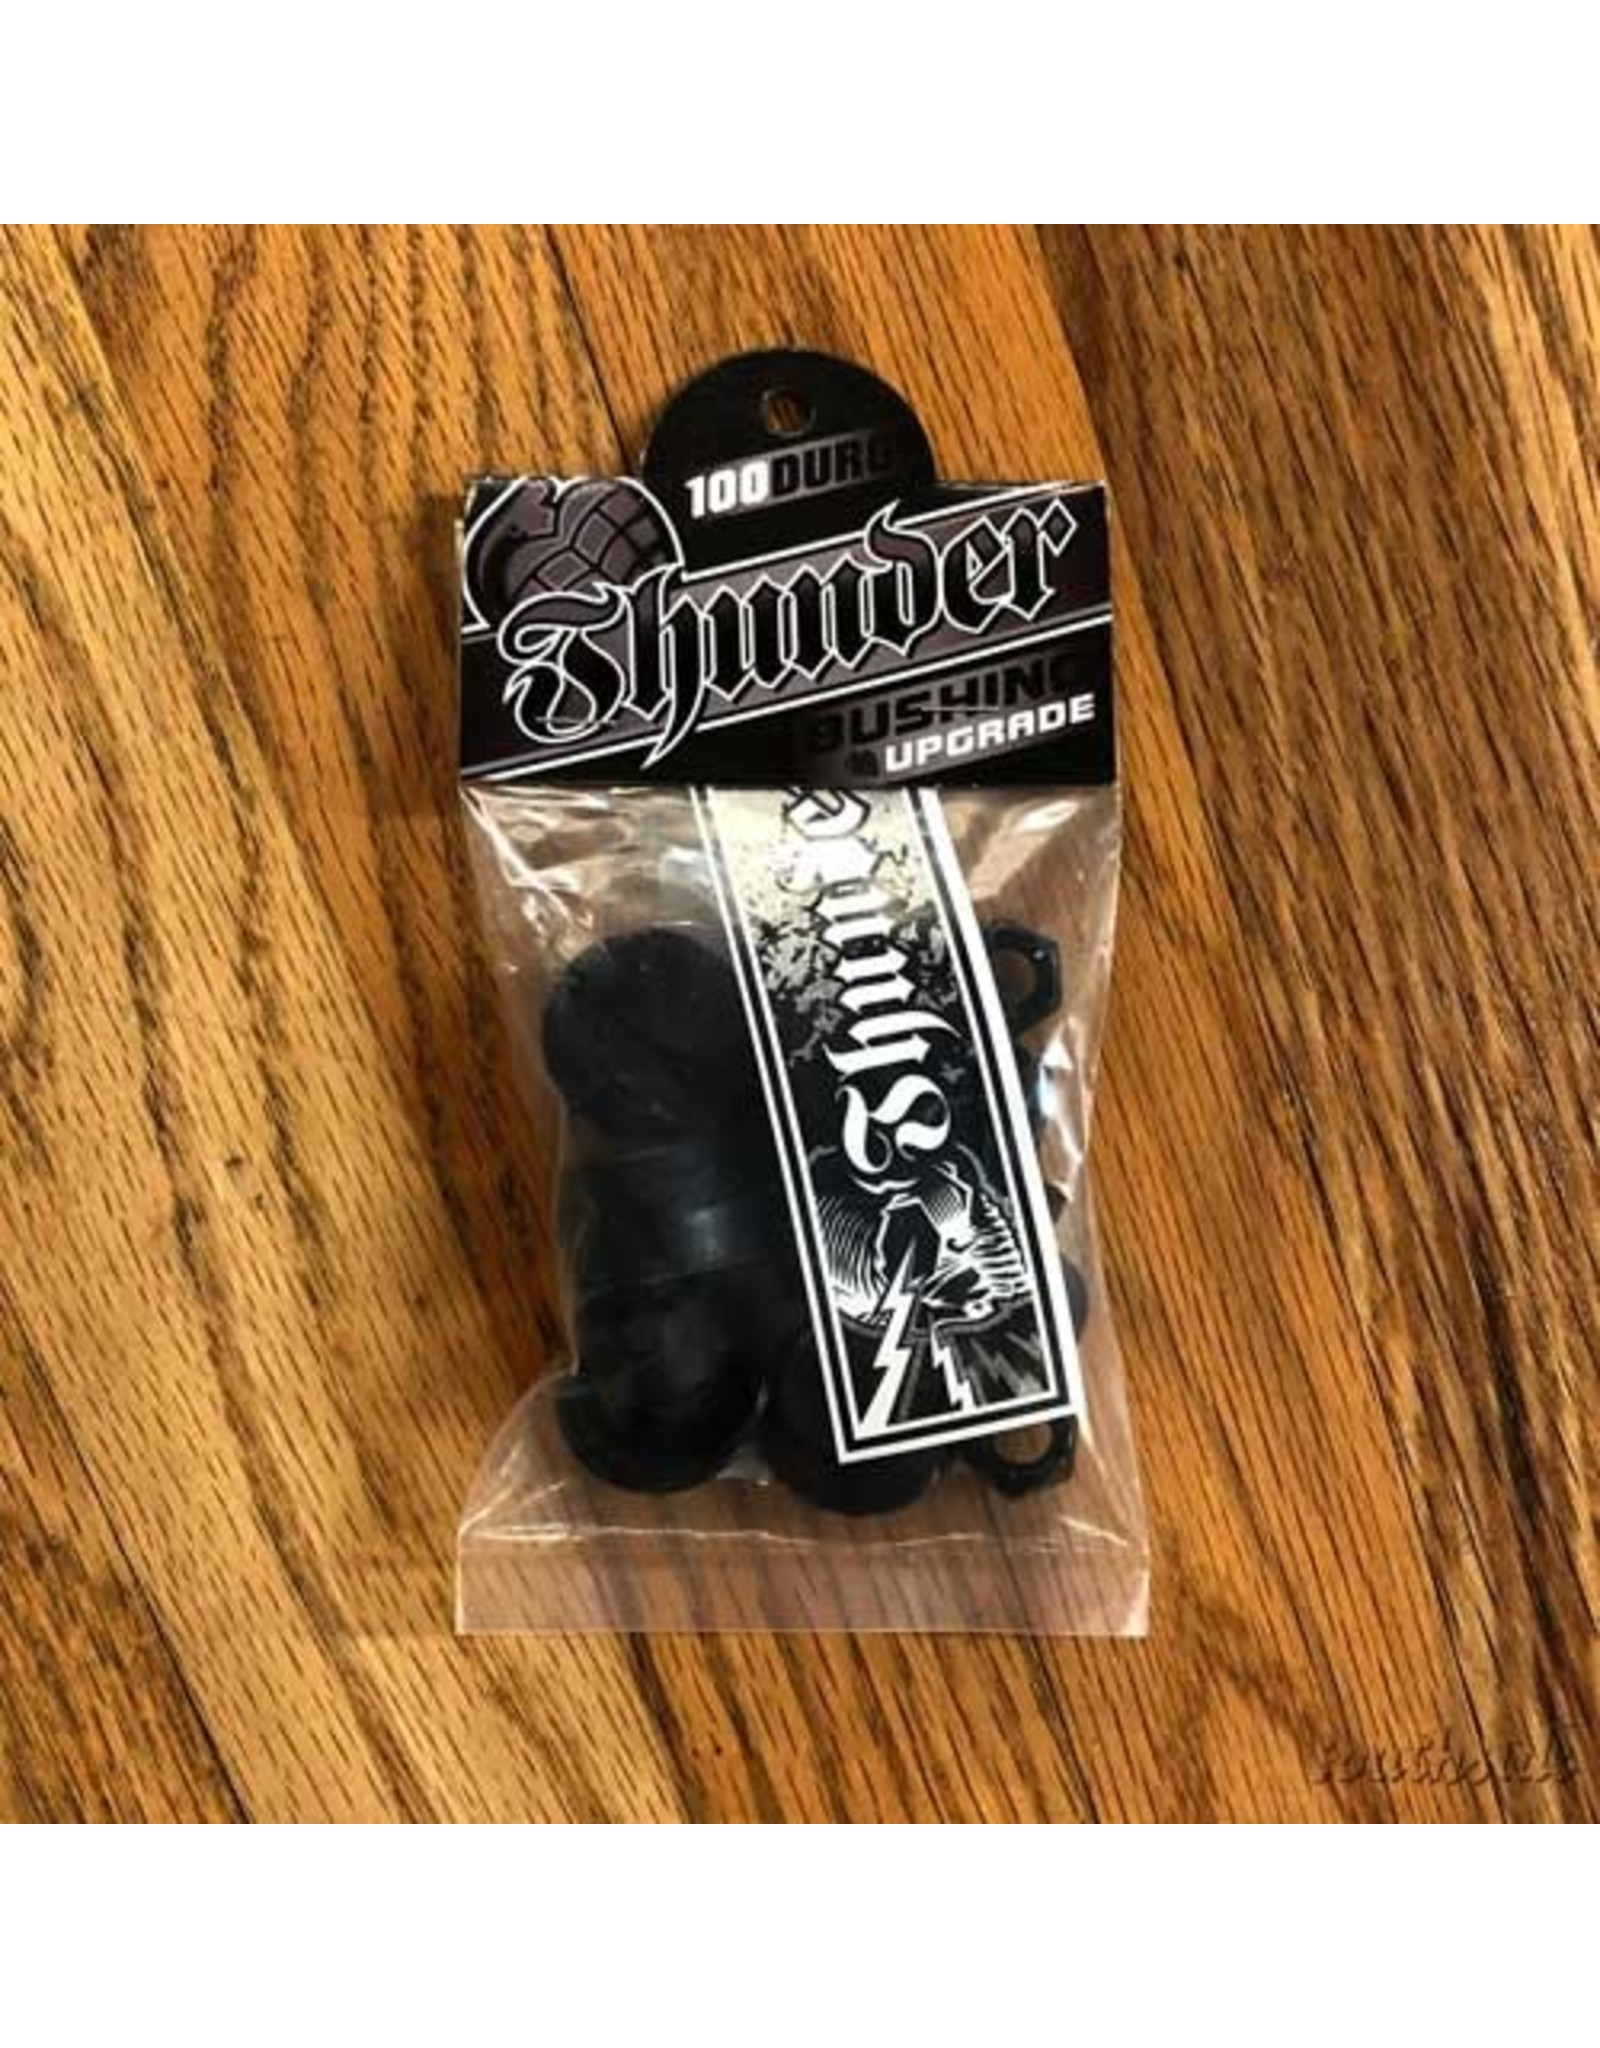 Thunder Bushings Rebuild Kit 100 Durometer